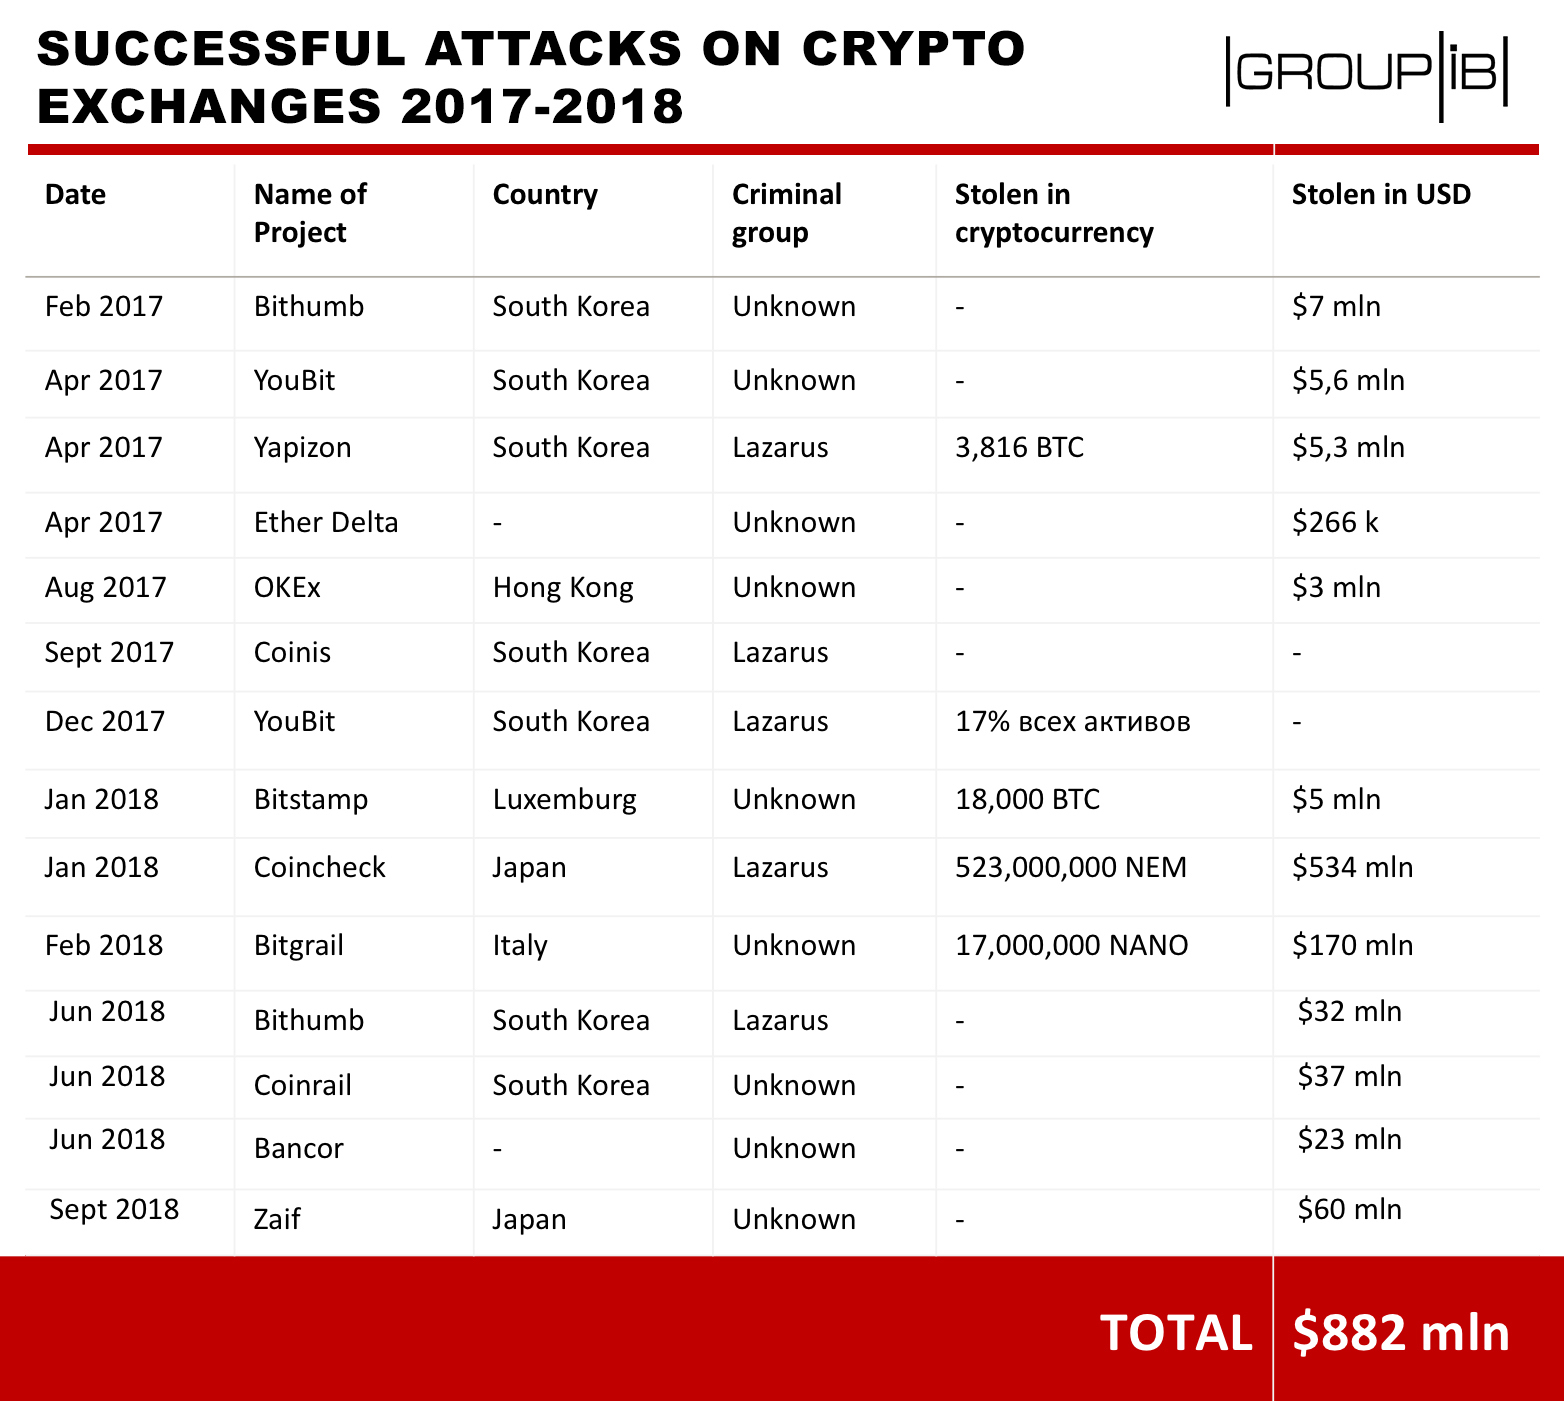 Group-IB: 14 cyber attacks on crypto exchanges resulted in a loss of $882 million